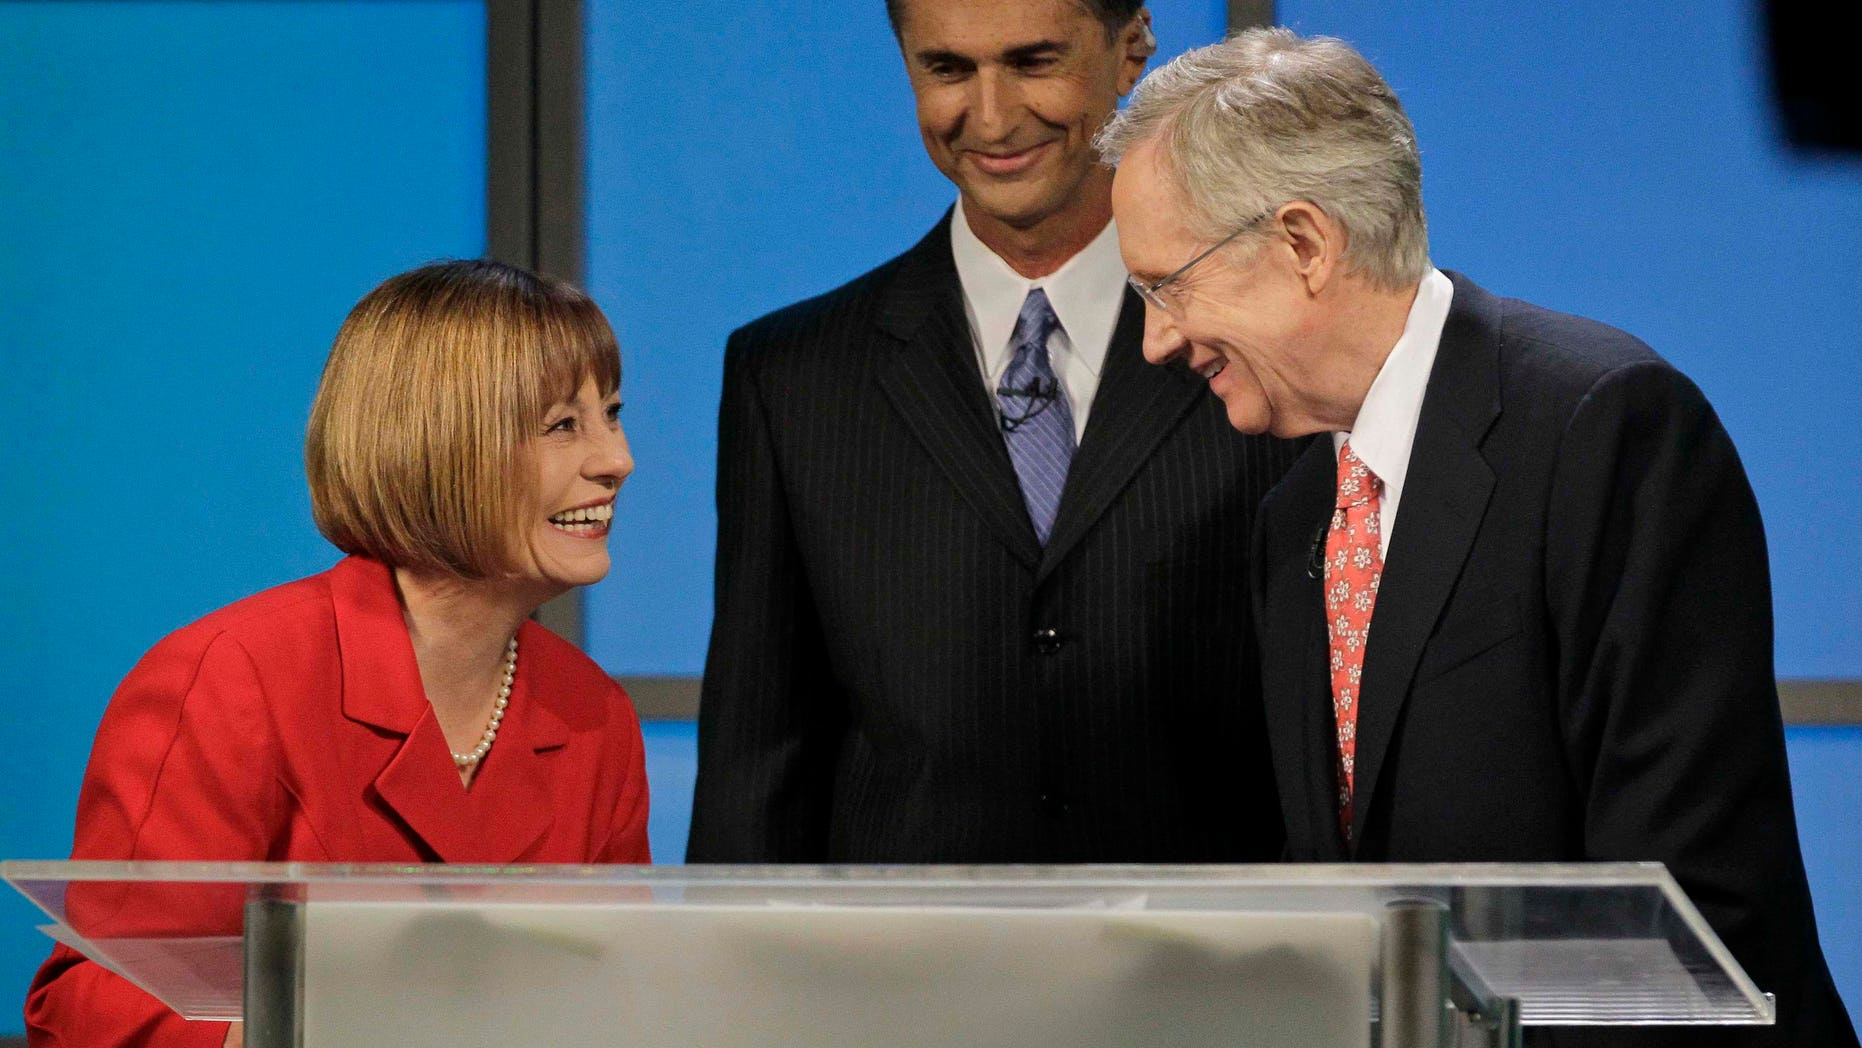 FILE - In this Oct. 14, 2010, file photo Republican Senate candidate Sharron Angle, left, and Democrat Senate Majority Leader Harry Reid talk after their televised Nevada Senate debate in Las Vegas as moderator Mitch Fox smiles. Senate races are extremely close in West Virginia and Nevada, where Reid is battling tea party-backed Angle in a bitter and costly campaign.  (AP Photo/Julie Jacobson, File)